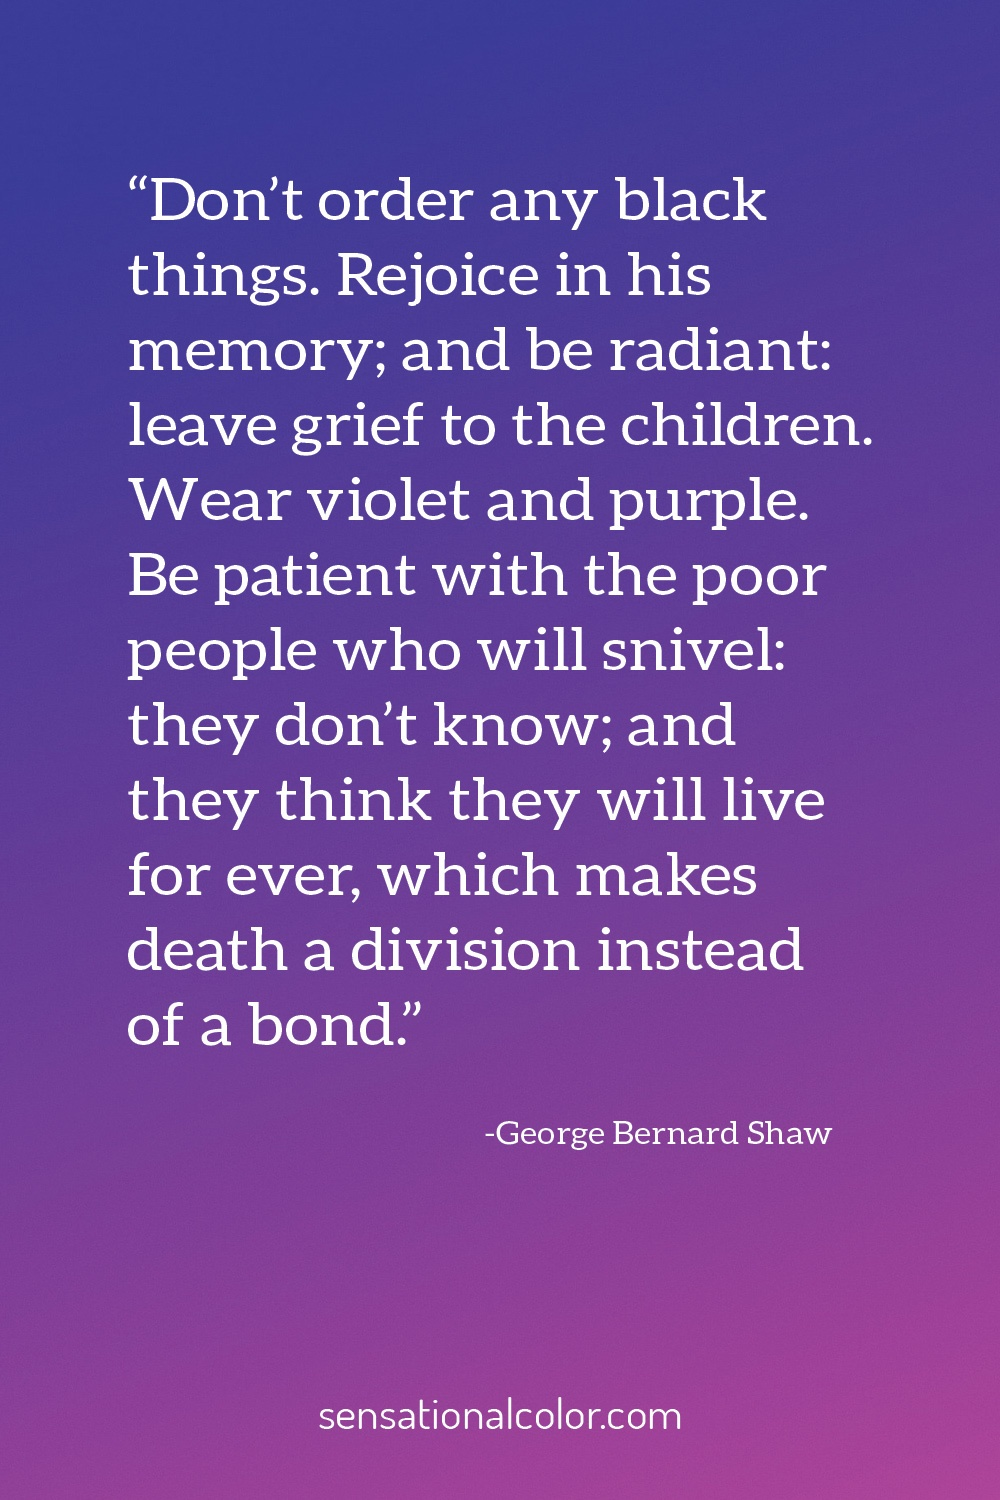 """Don't order any black things. Rejoice in his memory; and be radiant: leave grief to the children. Wear violet and purple. Be patient with the poor people who will snivel: they don't know; and they think they will live for ever, which makes death a division instead of a bond."" - George Bernard Shaw"